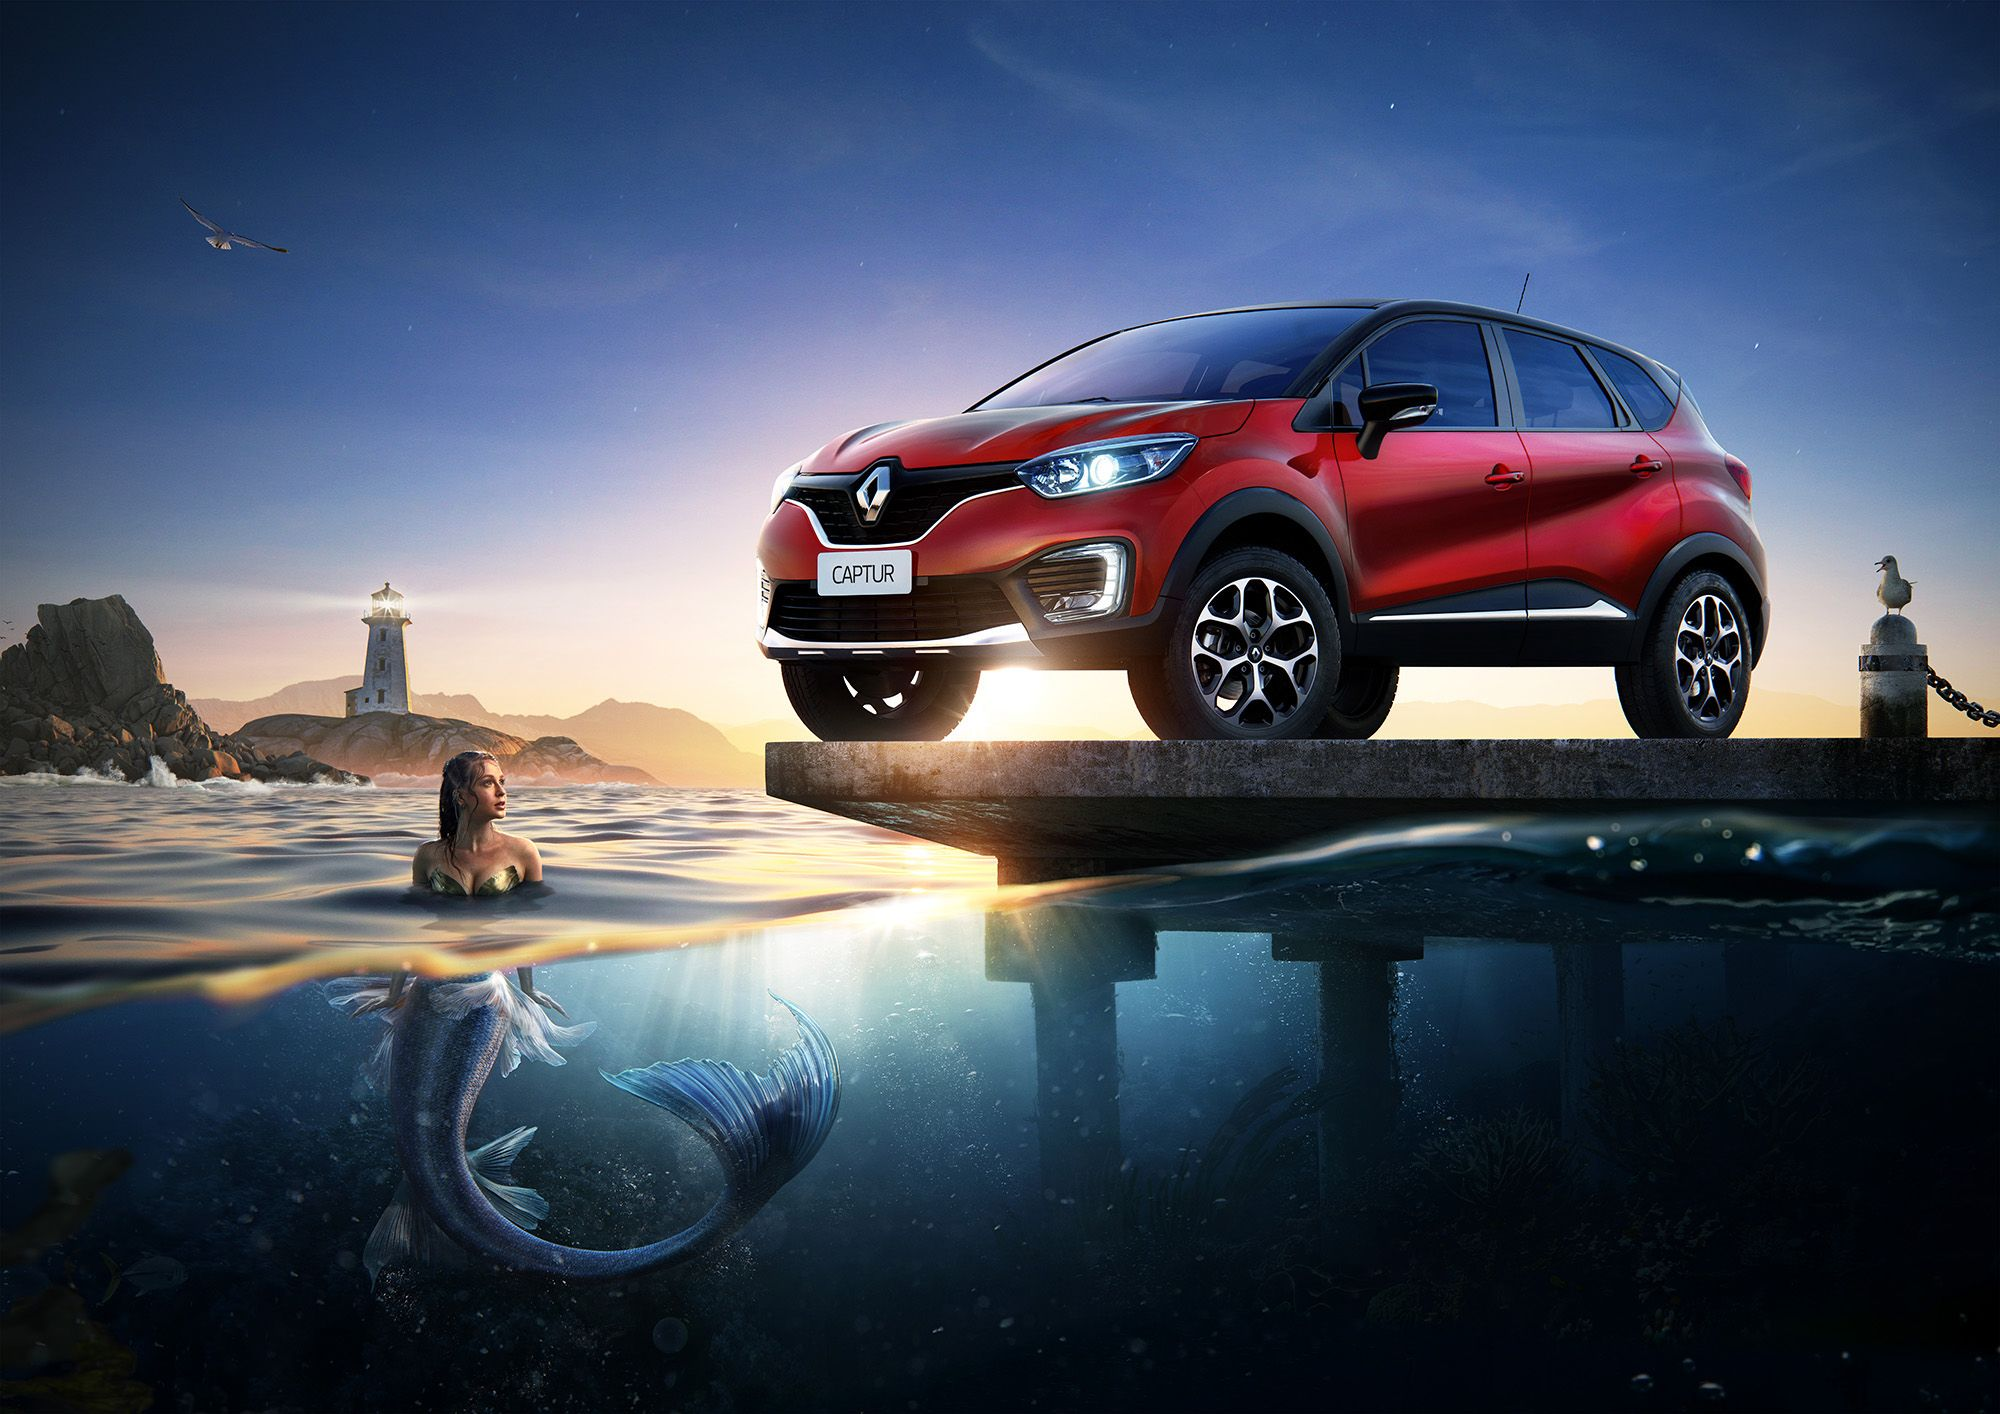 Renault Captur Mermaid Making Of On Behance